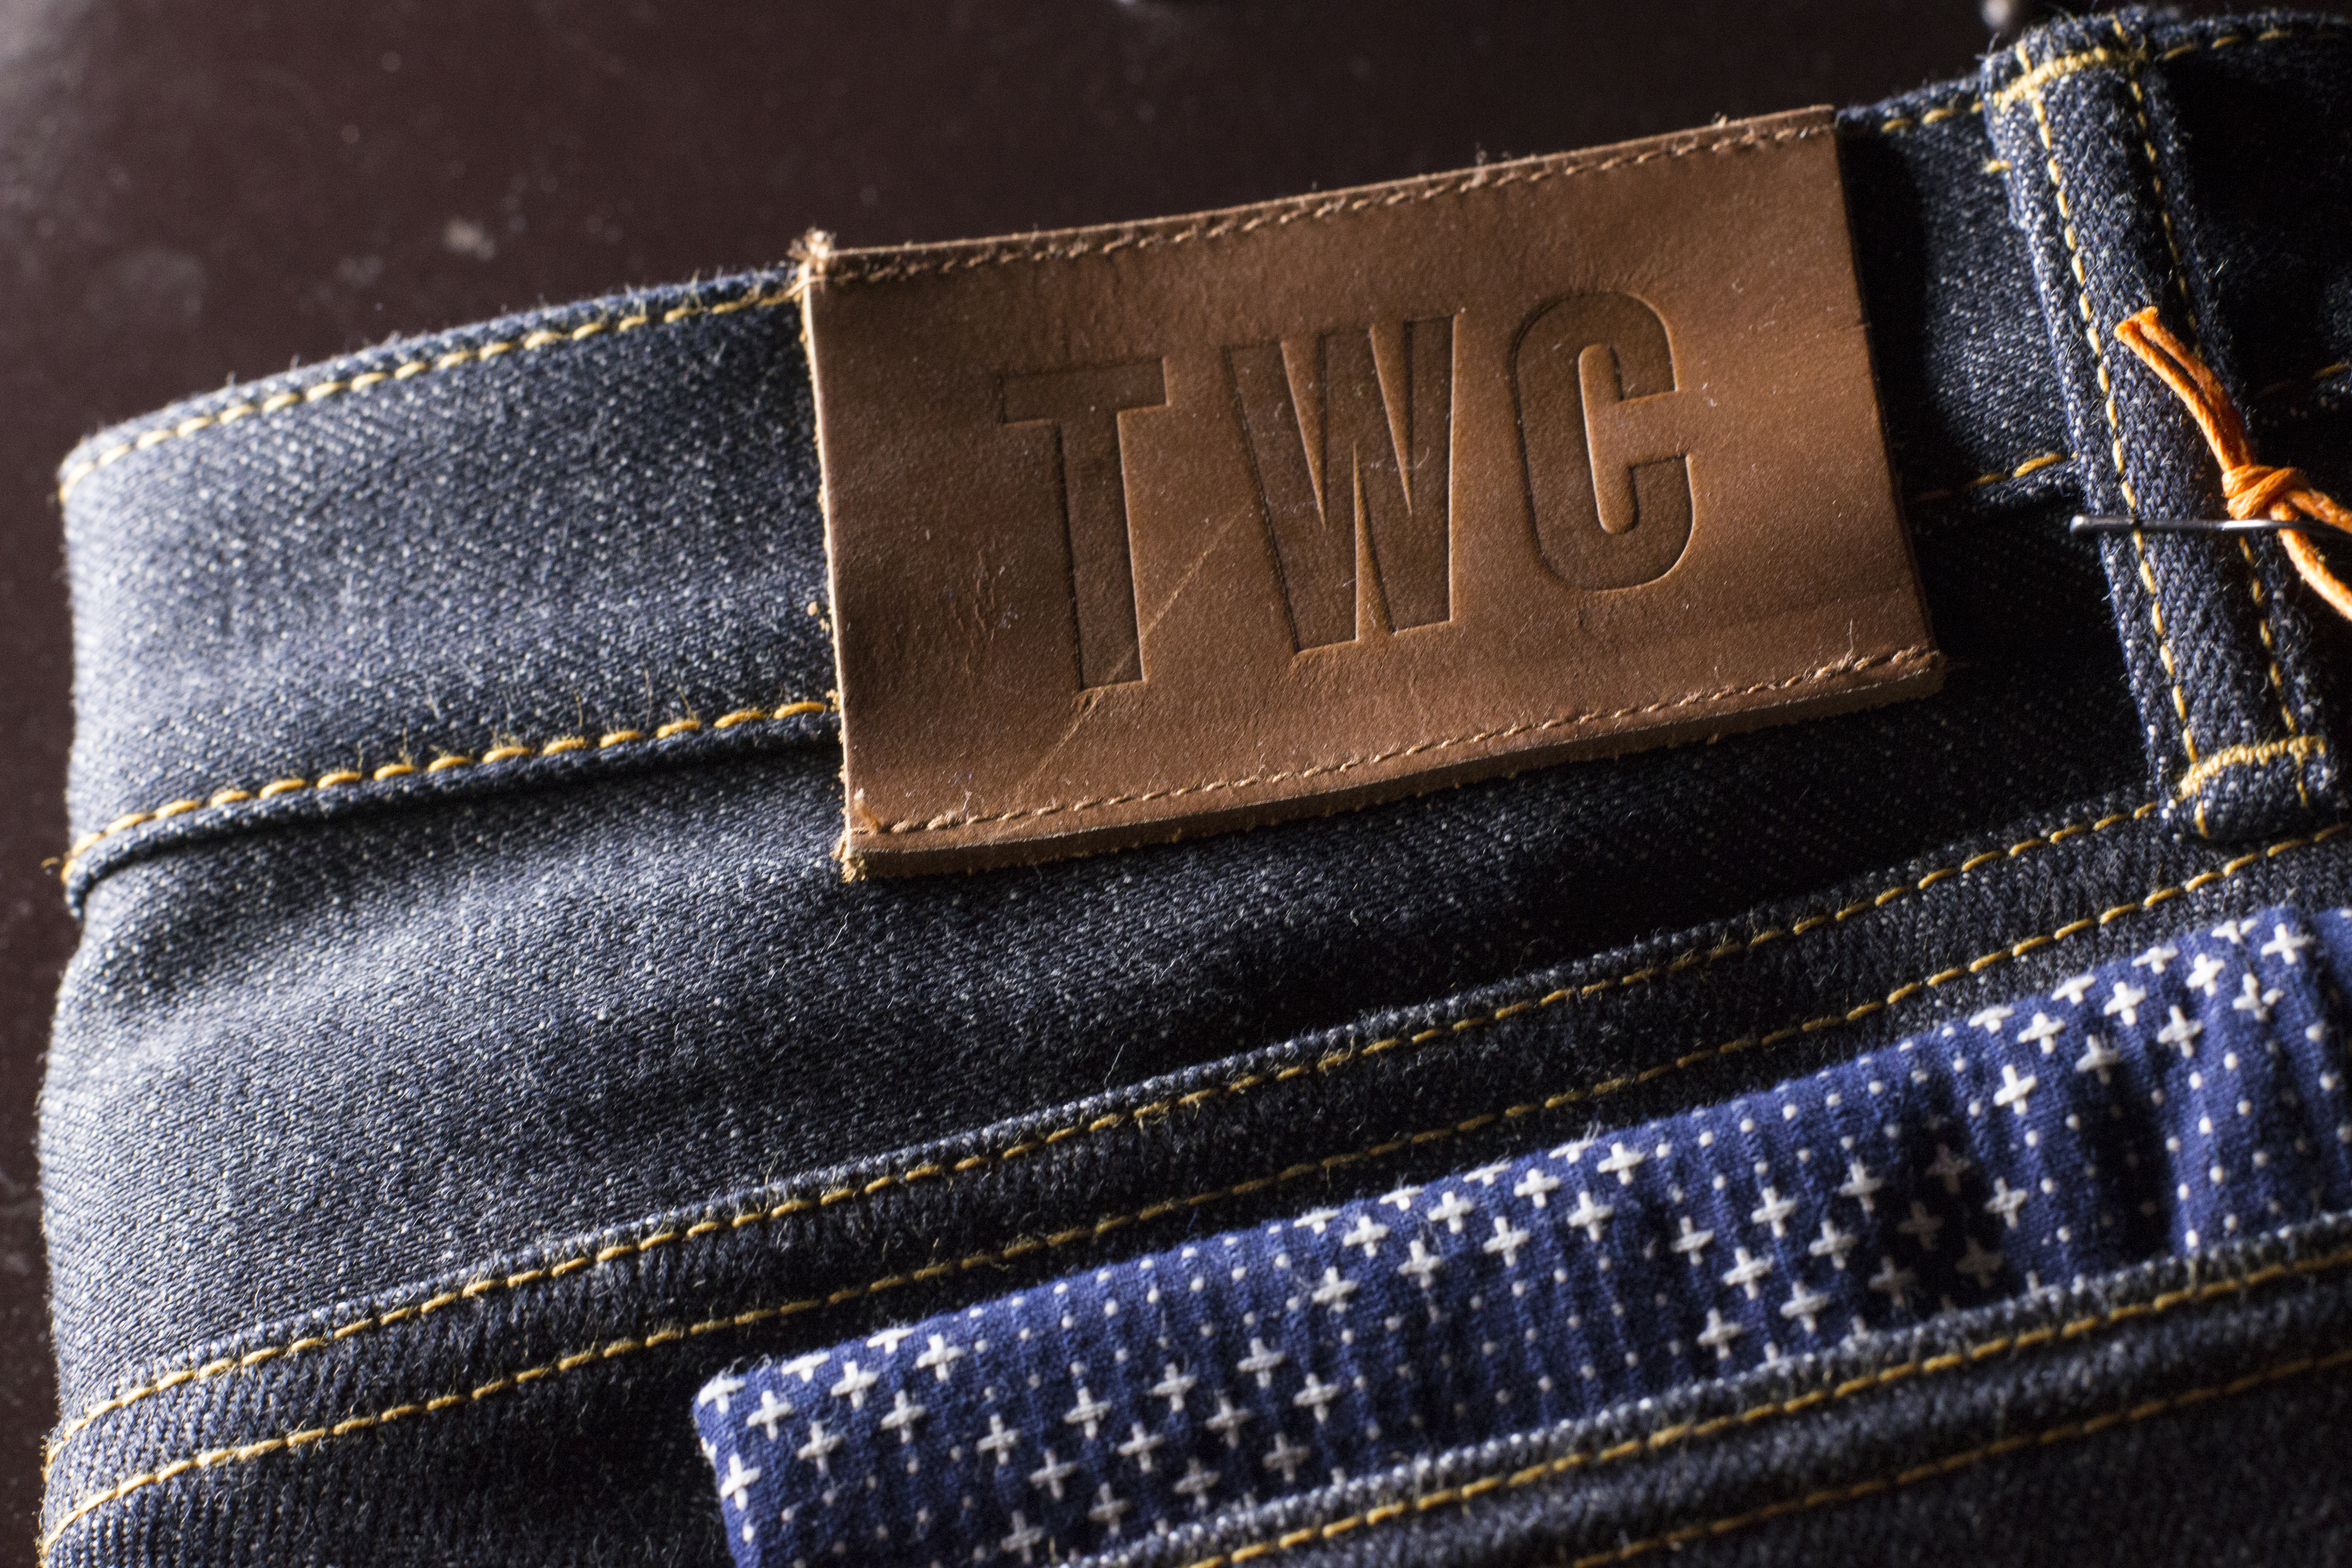 One of my favorite parts of scouring the globe for raw denim is discovering  new brands and, if worth while, sharing them with you.